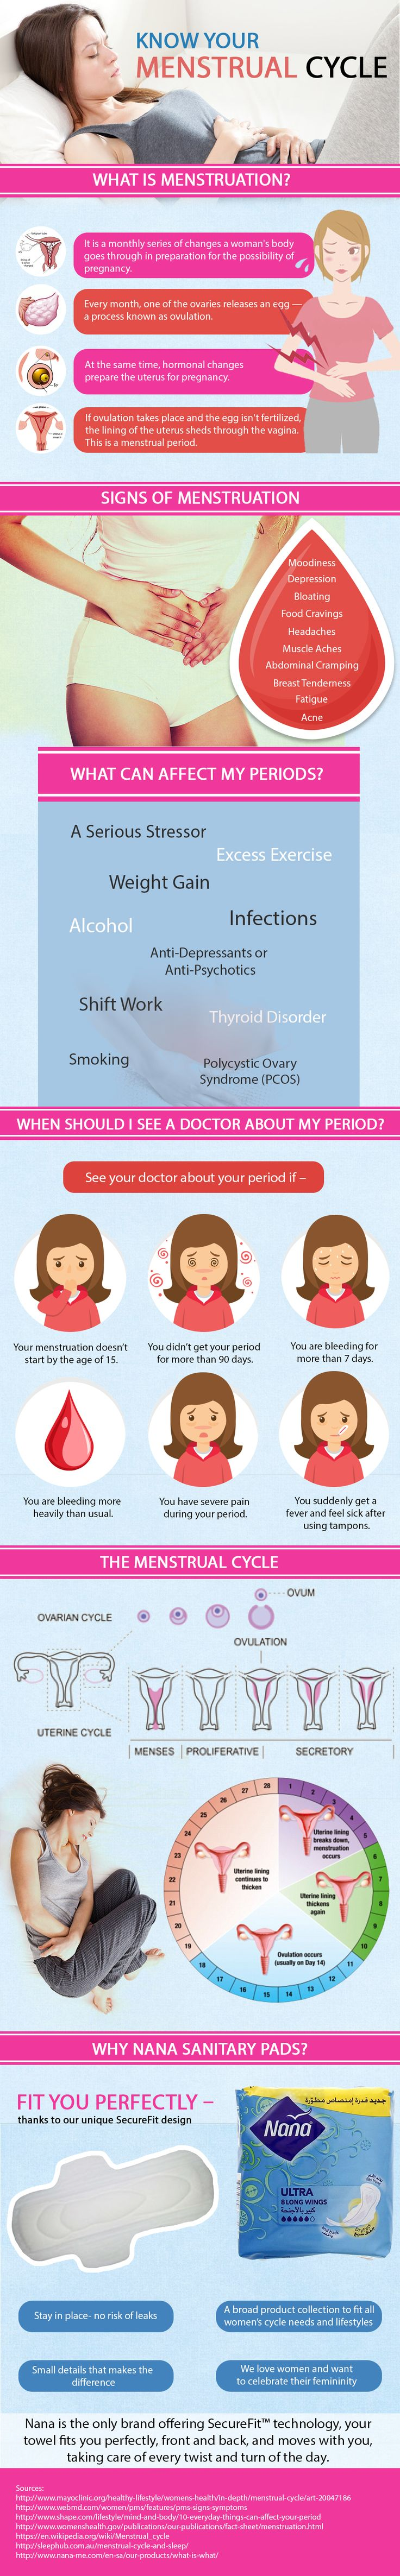 Know about menstruation. What are the signs of menstruation? How does it affect the period cycle? Click to know more about menstrual cycle. Know more at http://www.nana-me.com/en-sa/my-period/all-about-period/